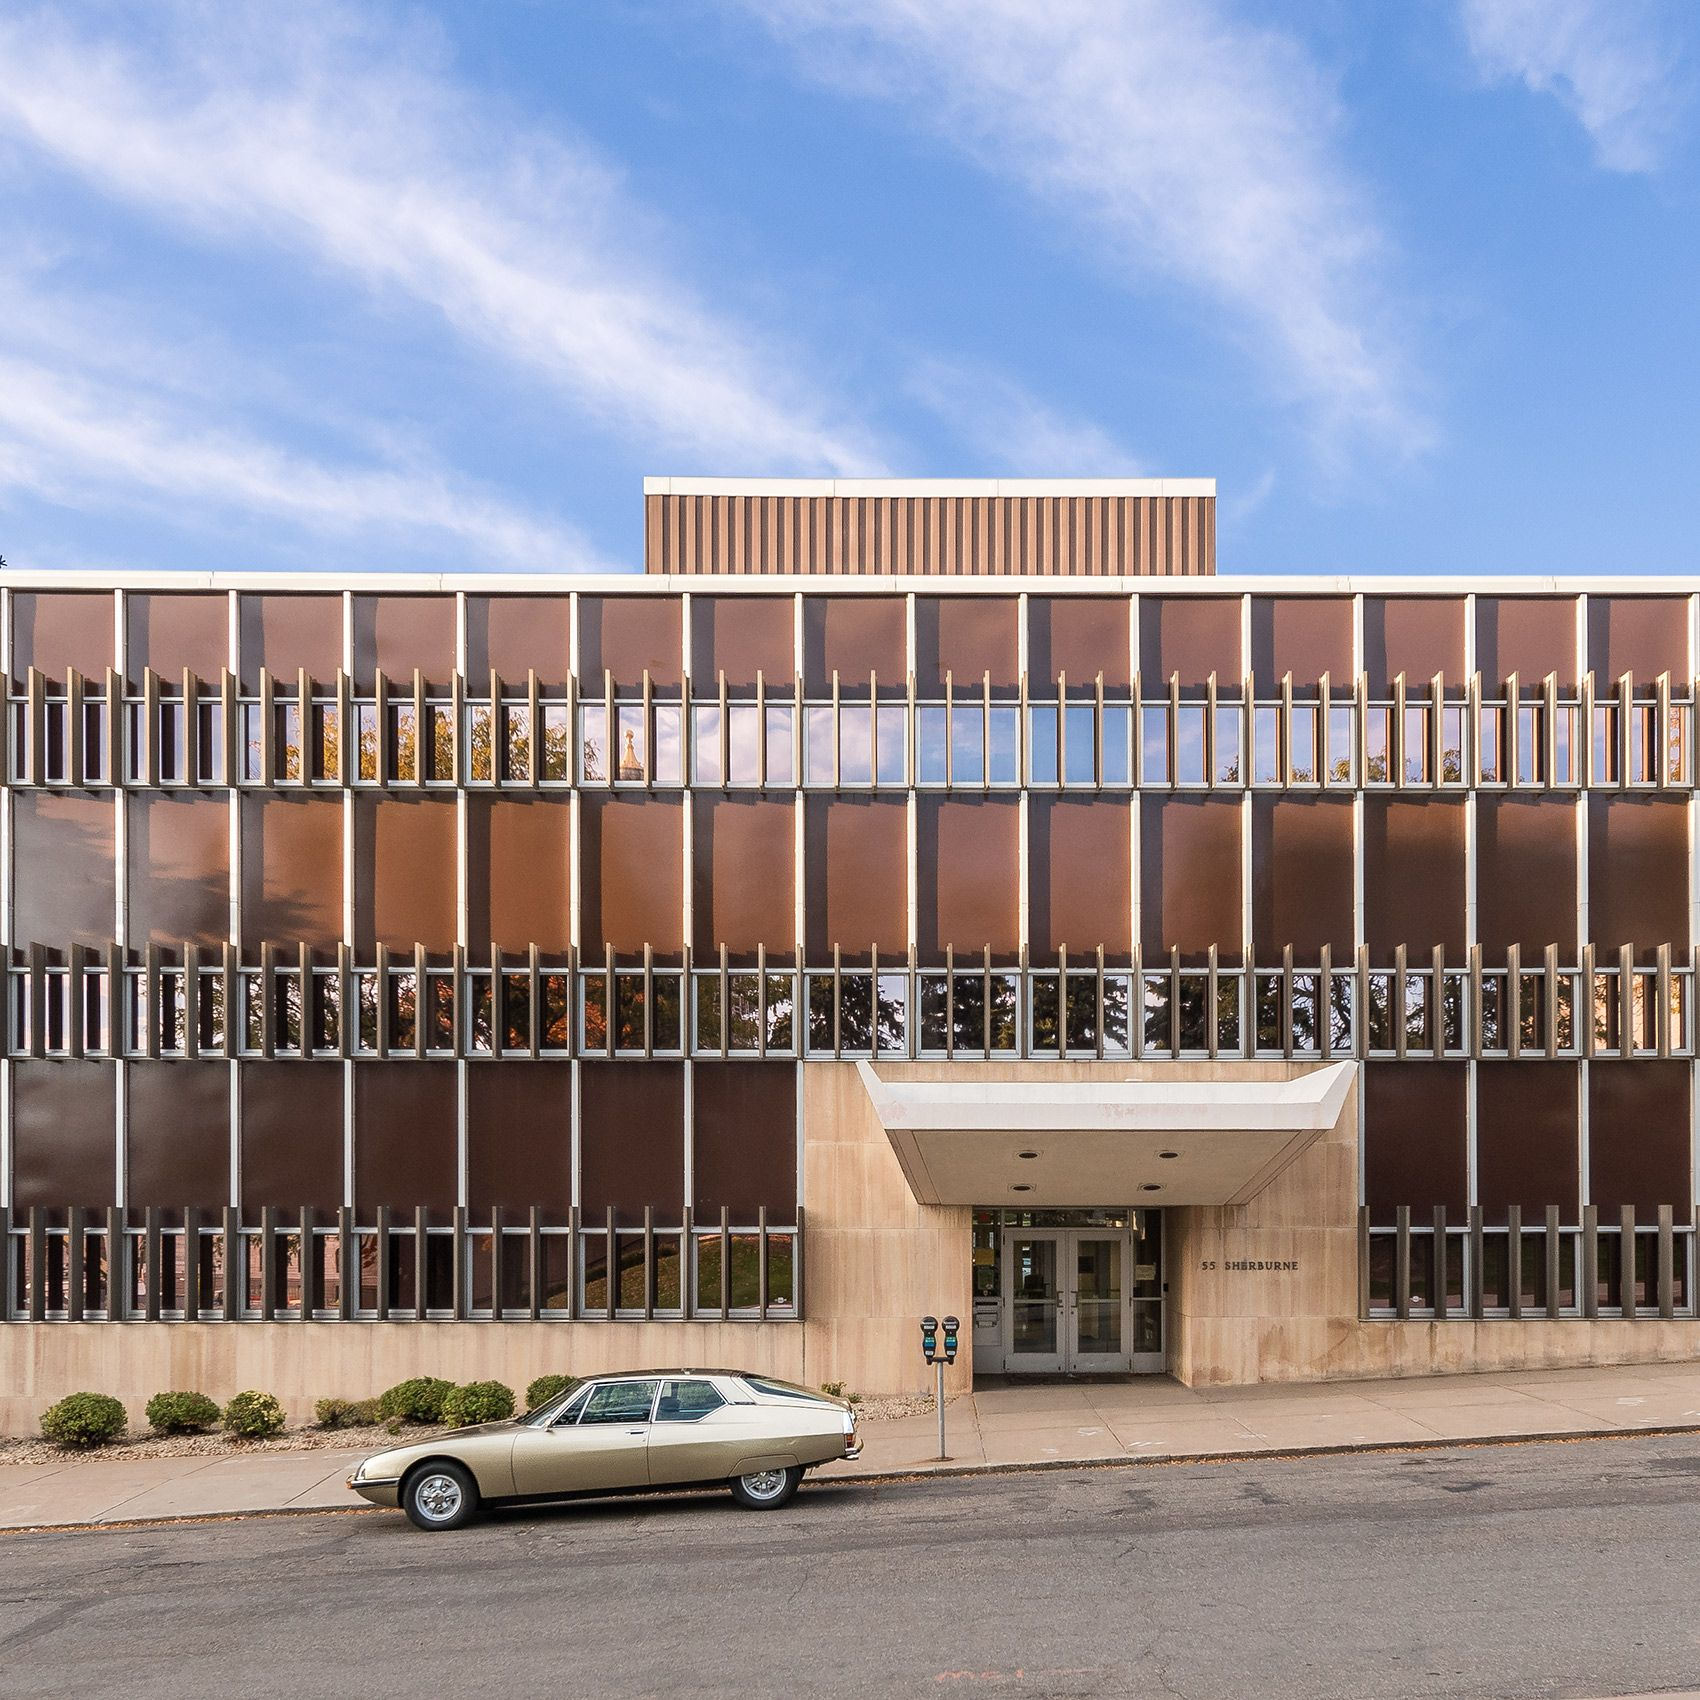 1973 CITROEN SM | MINNESOTA EDUCATIONAL ASSOCIATION HEADQUARTERS BUILDING | ST PAUL | HAARSTICK, LUNDGREN & ASSOCIATES | 1954